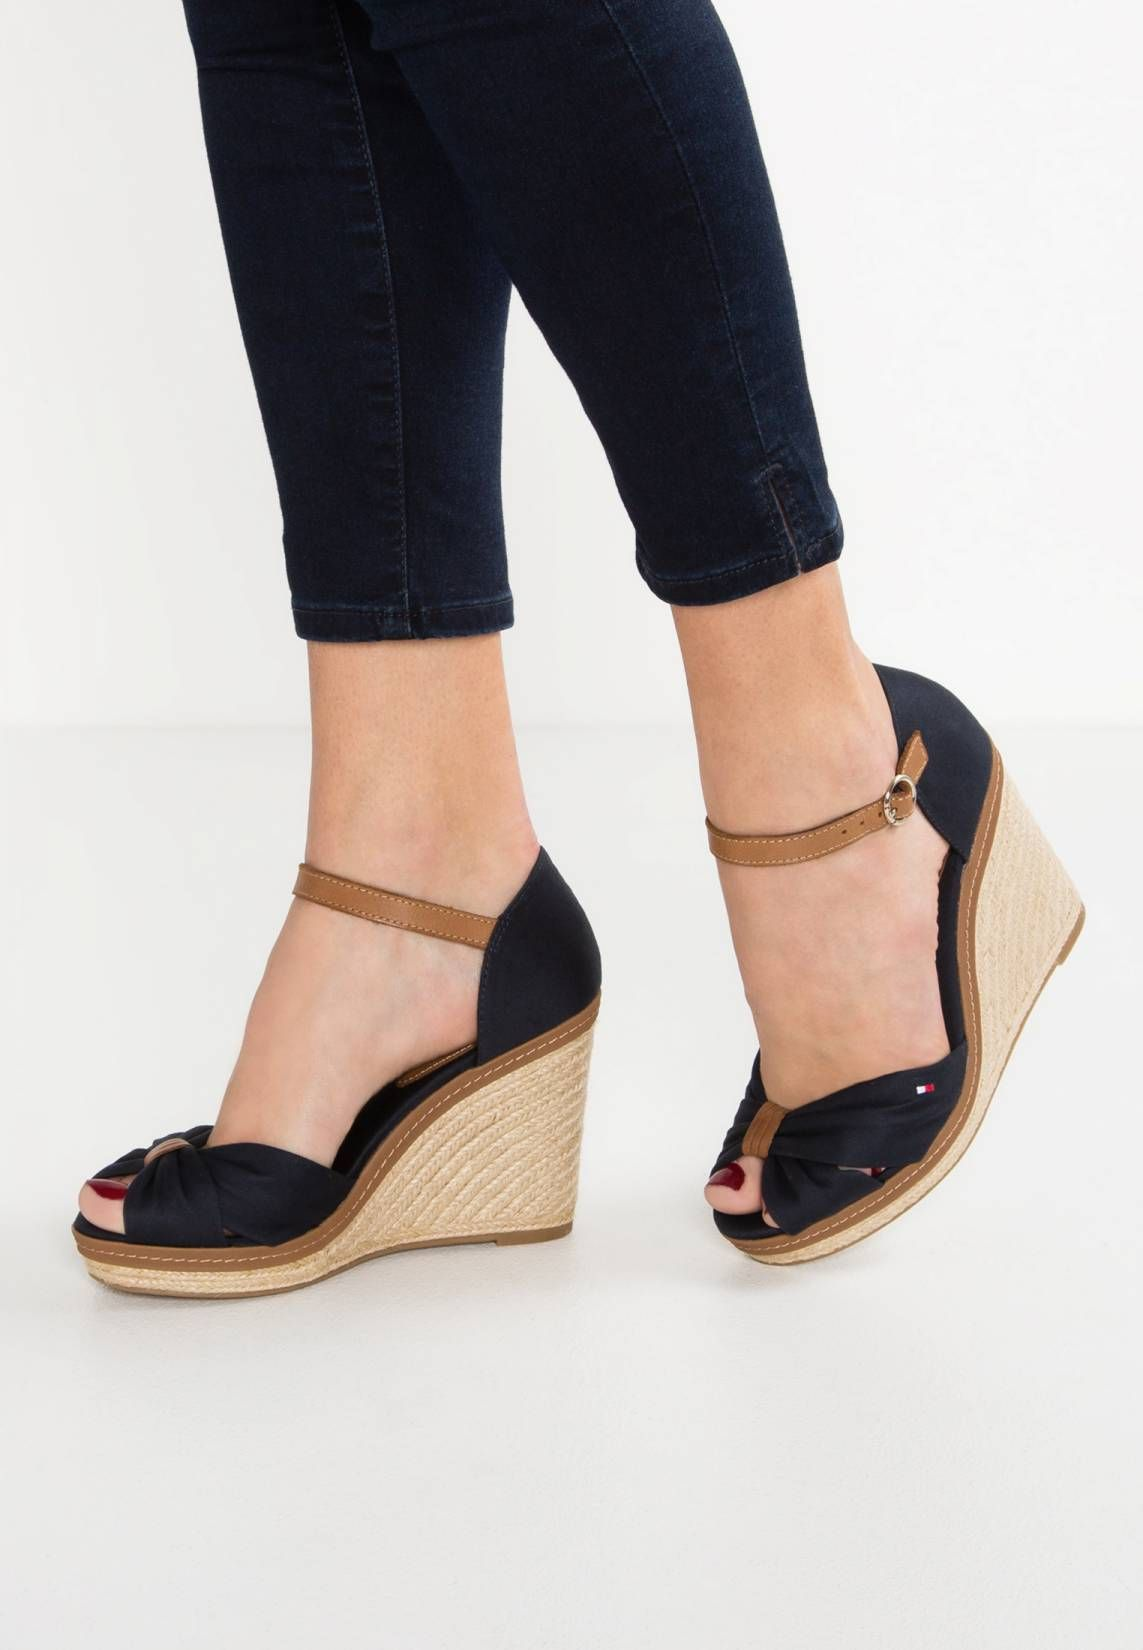 Tommy HilfigerHigh heeled sandals - dark blue PcAXabyb